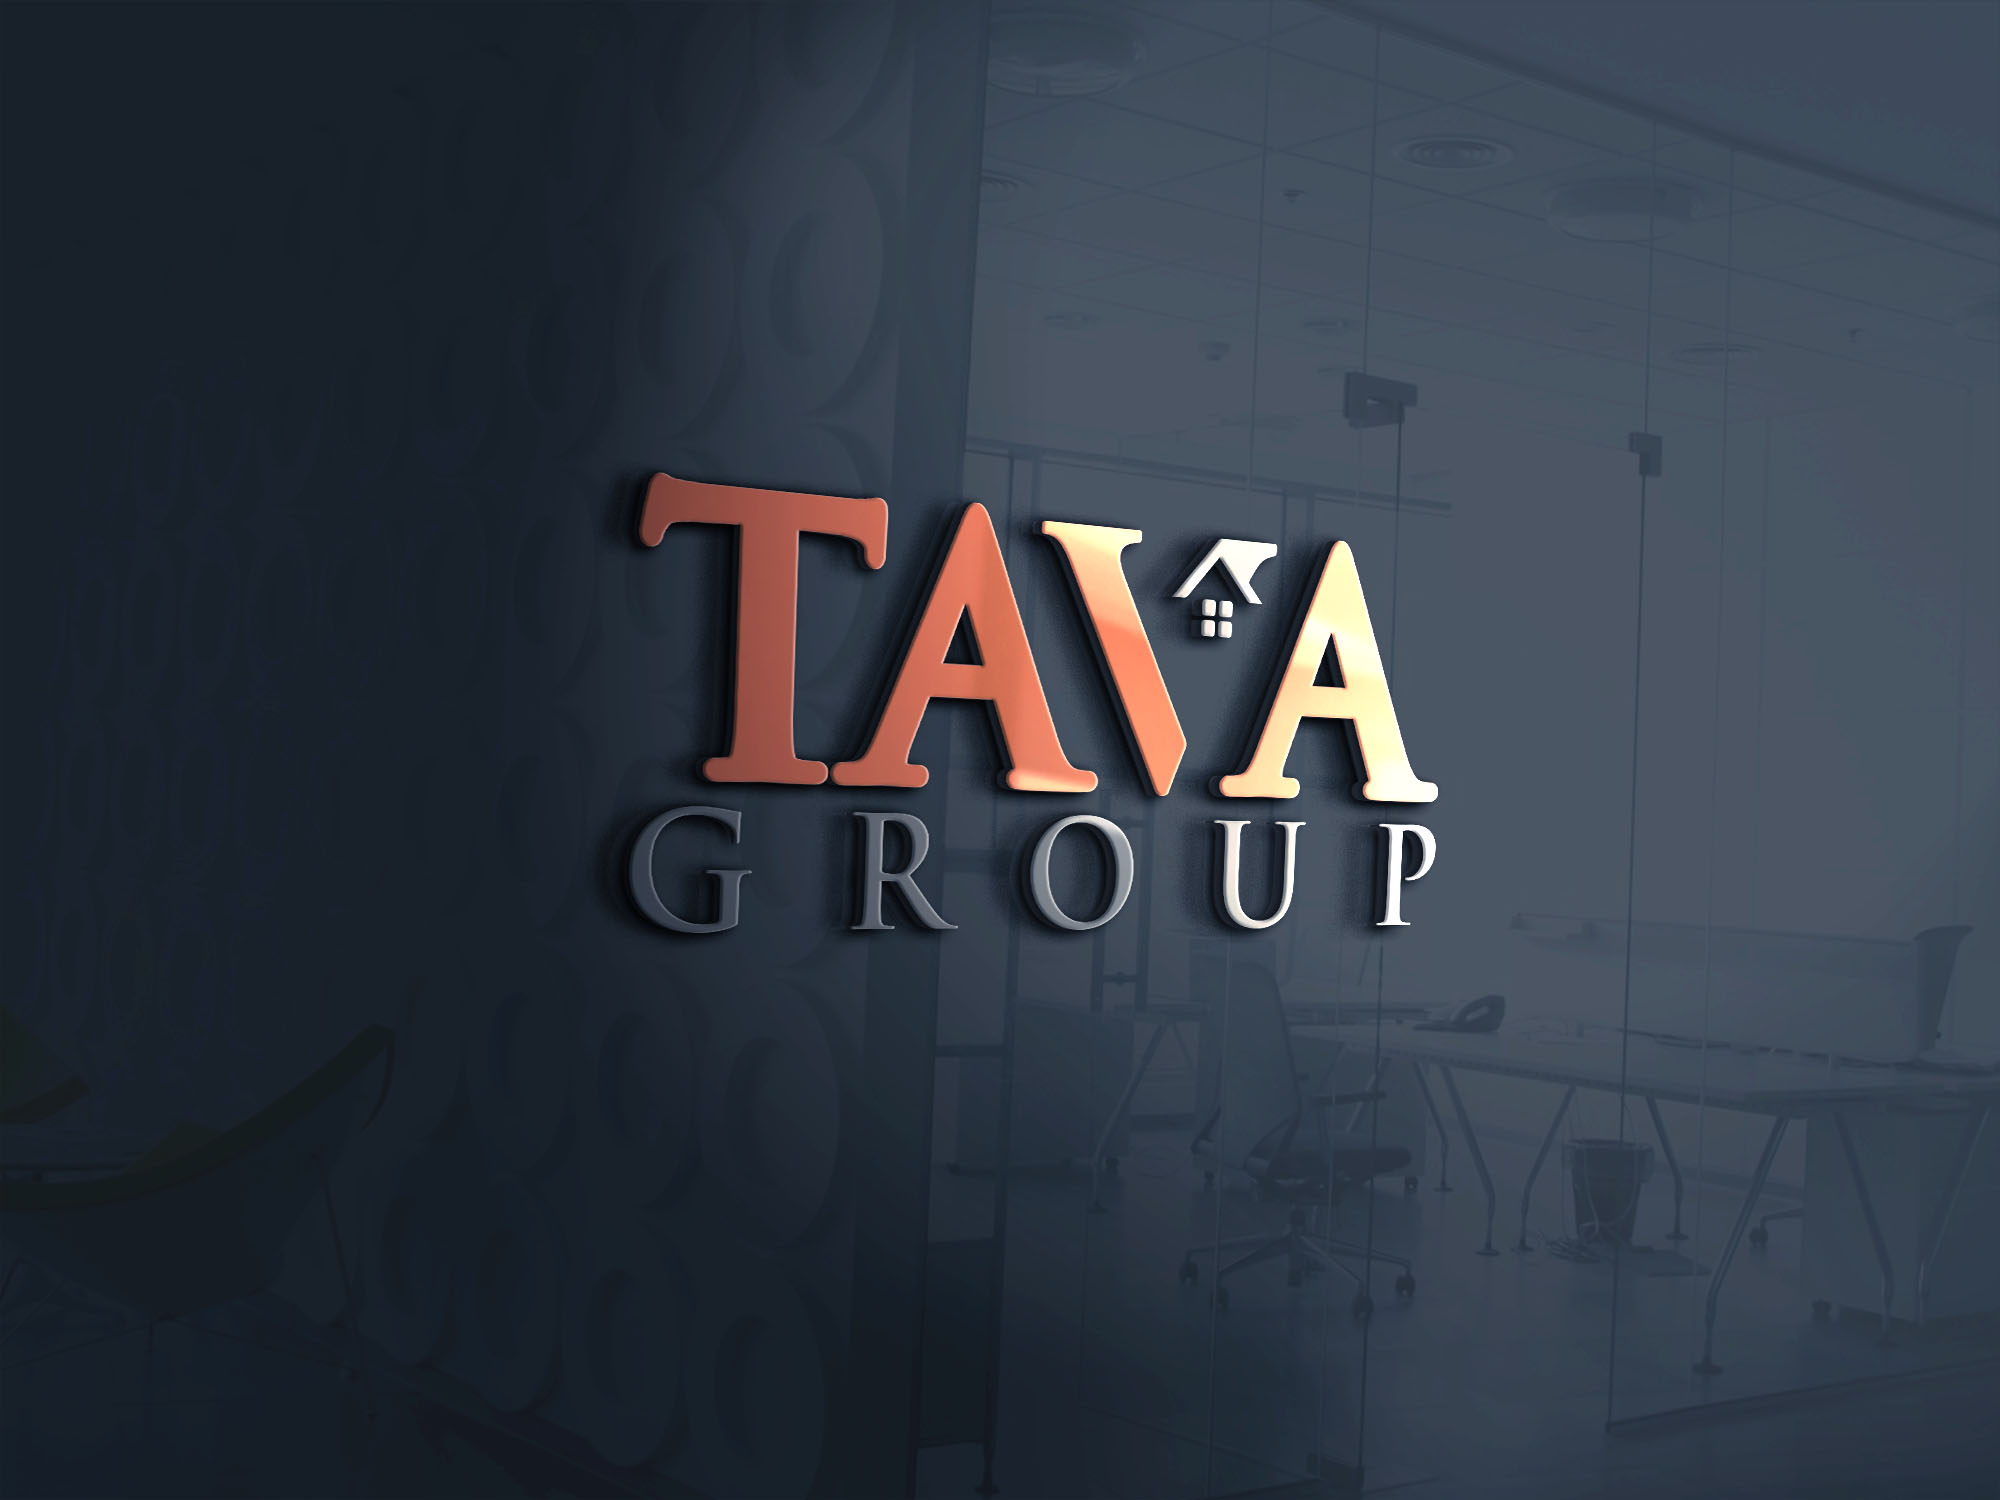 Logo Design by Mohidul Islam - Entry No. 196 in the Logo Design Contest Creative Logo Design for Tava Group.